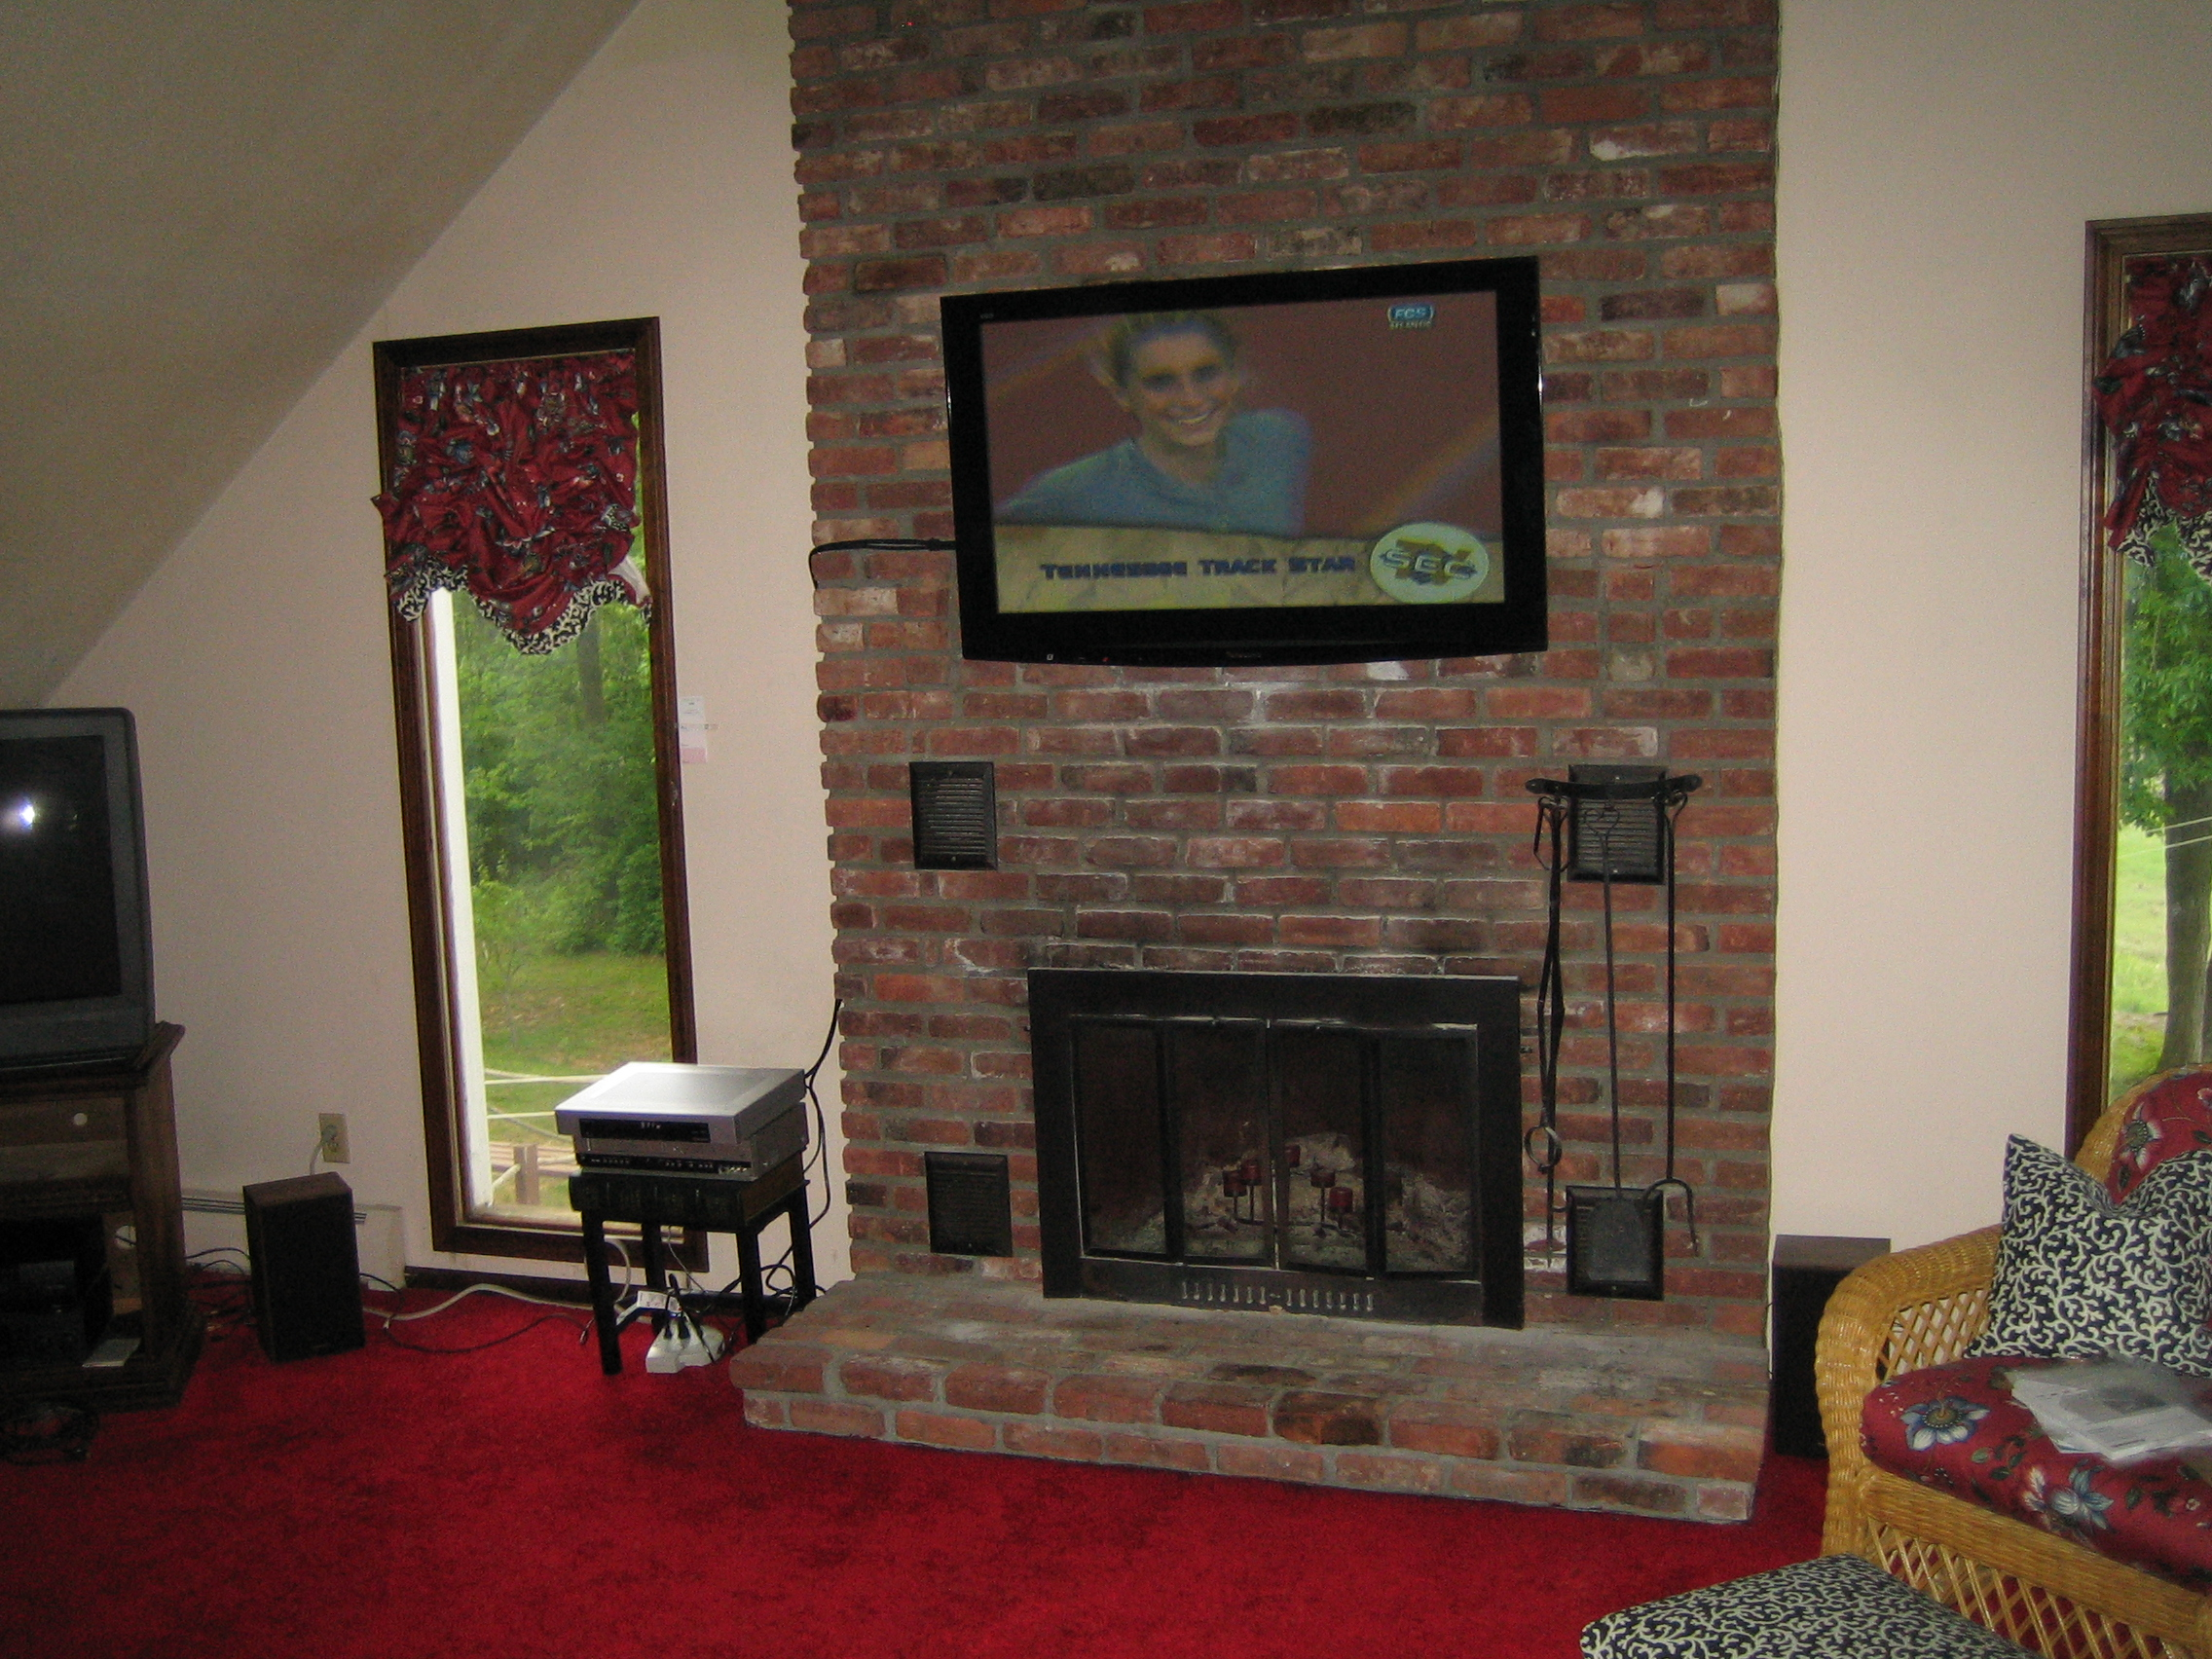 Durham ct mount tv above fireplace home theater installation for Tv over fireplace